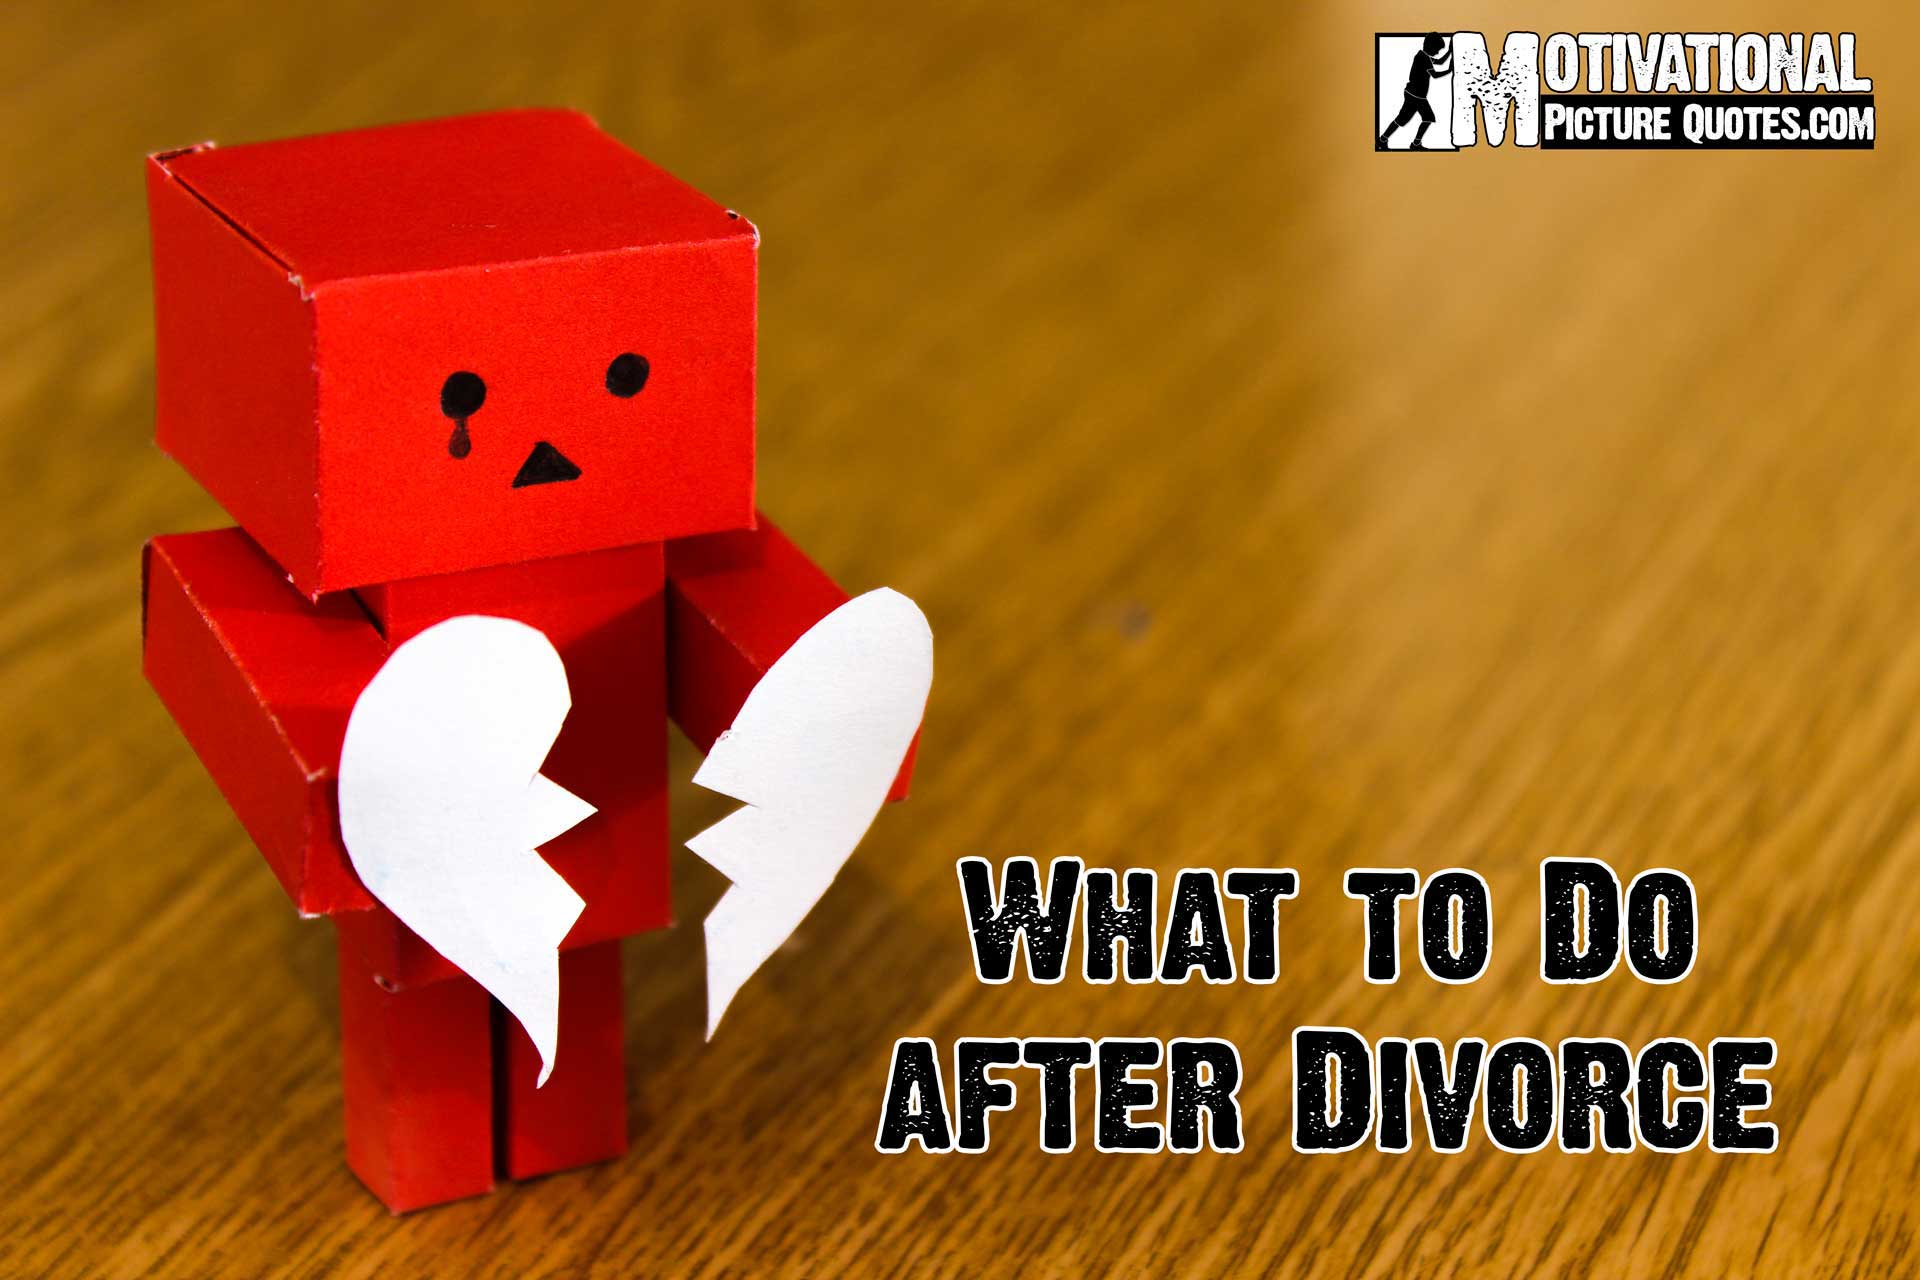 What to Do after Divorce